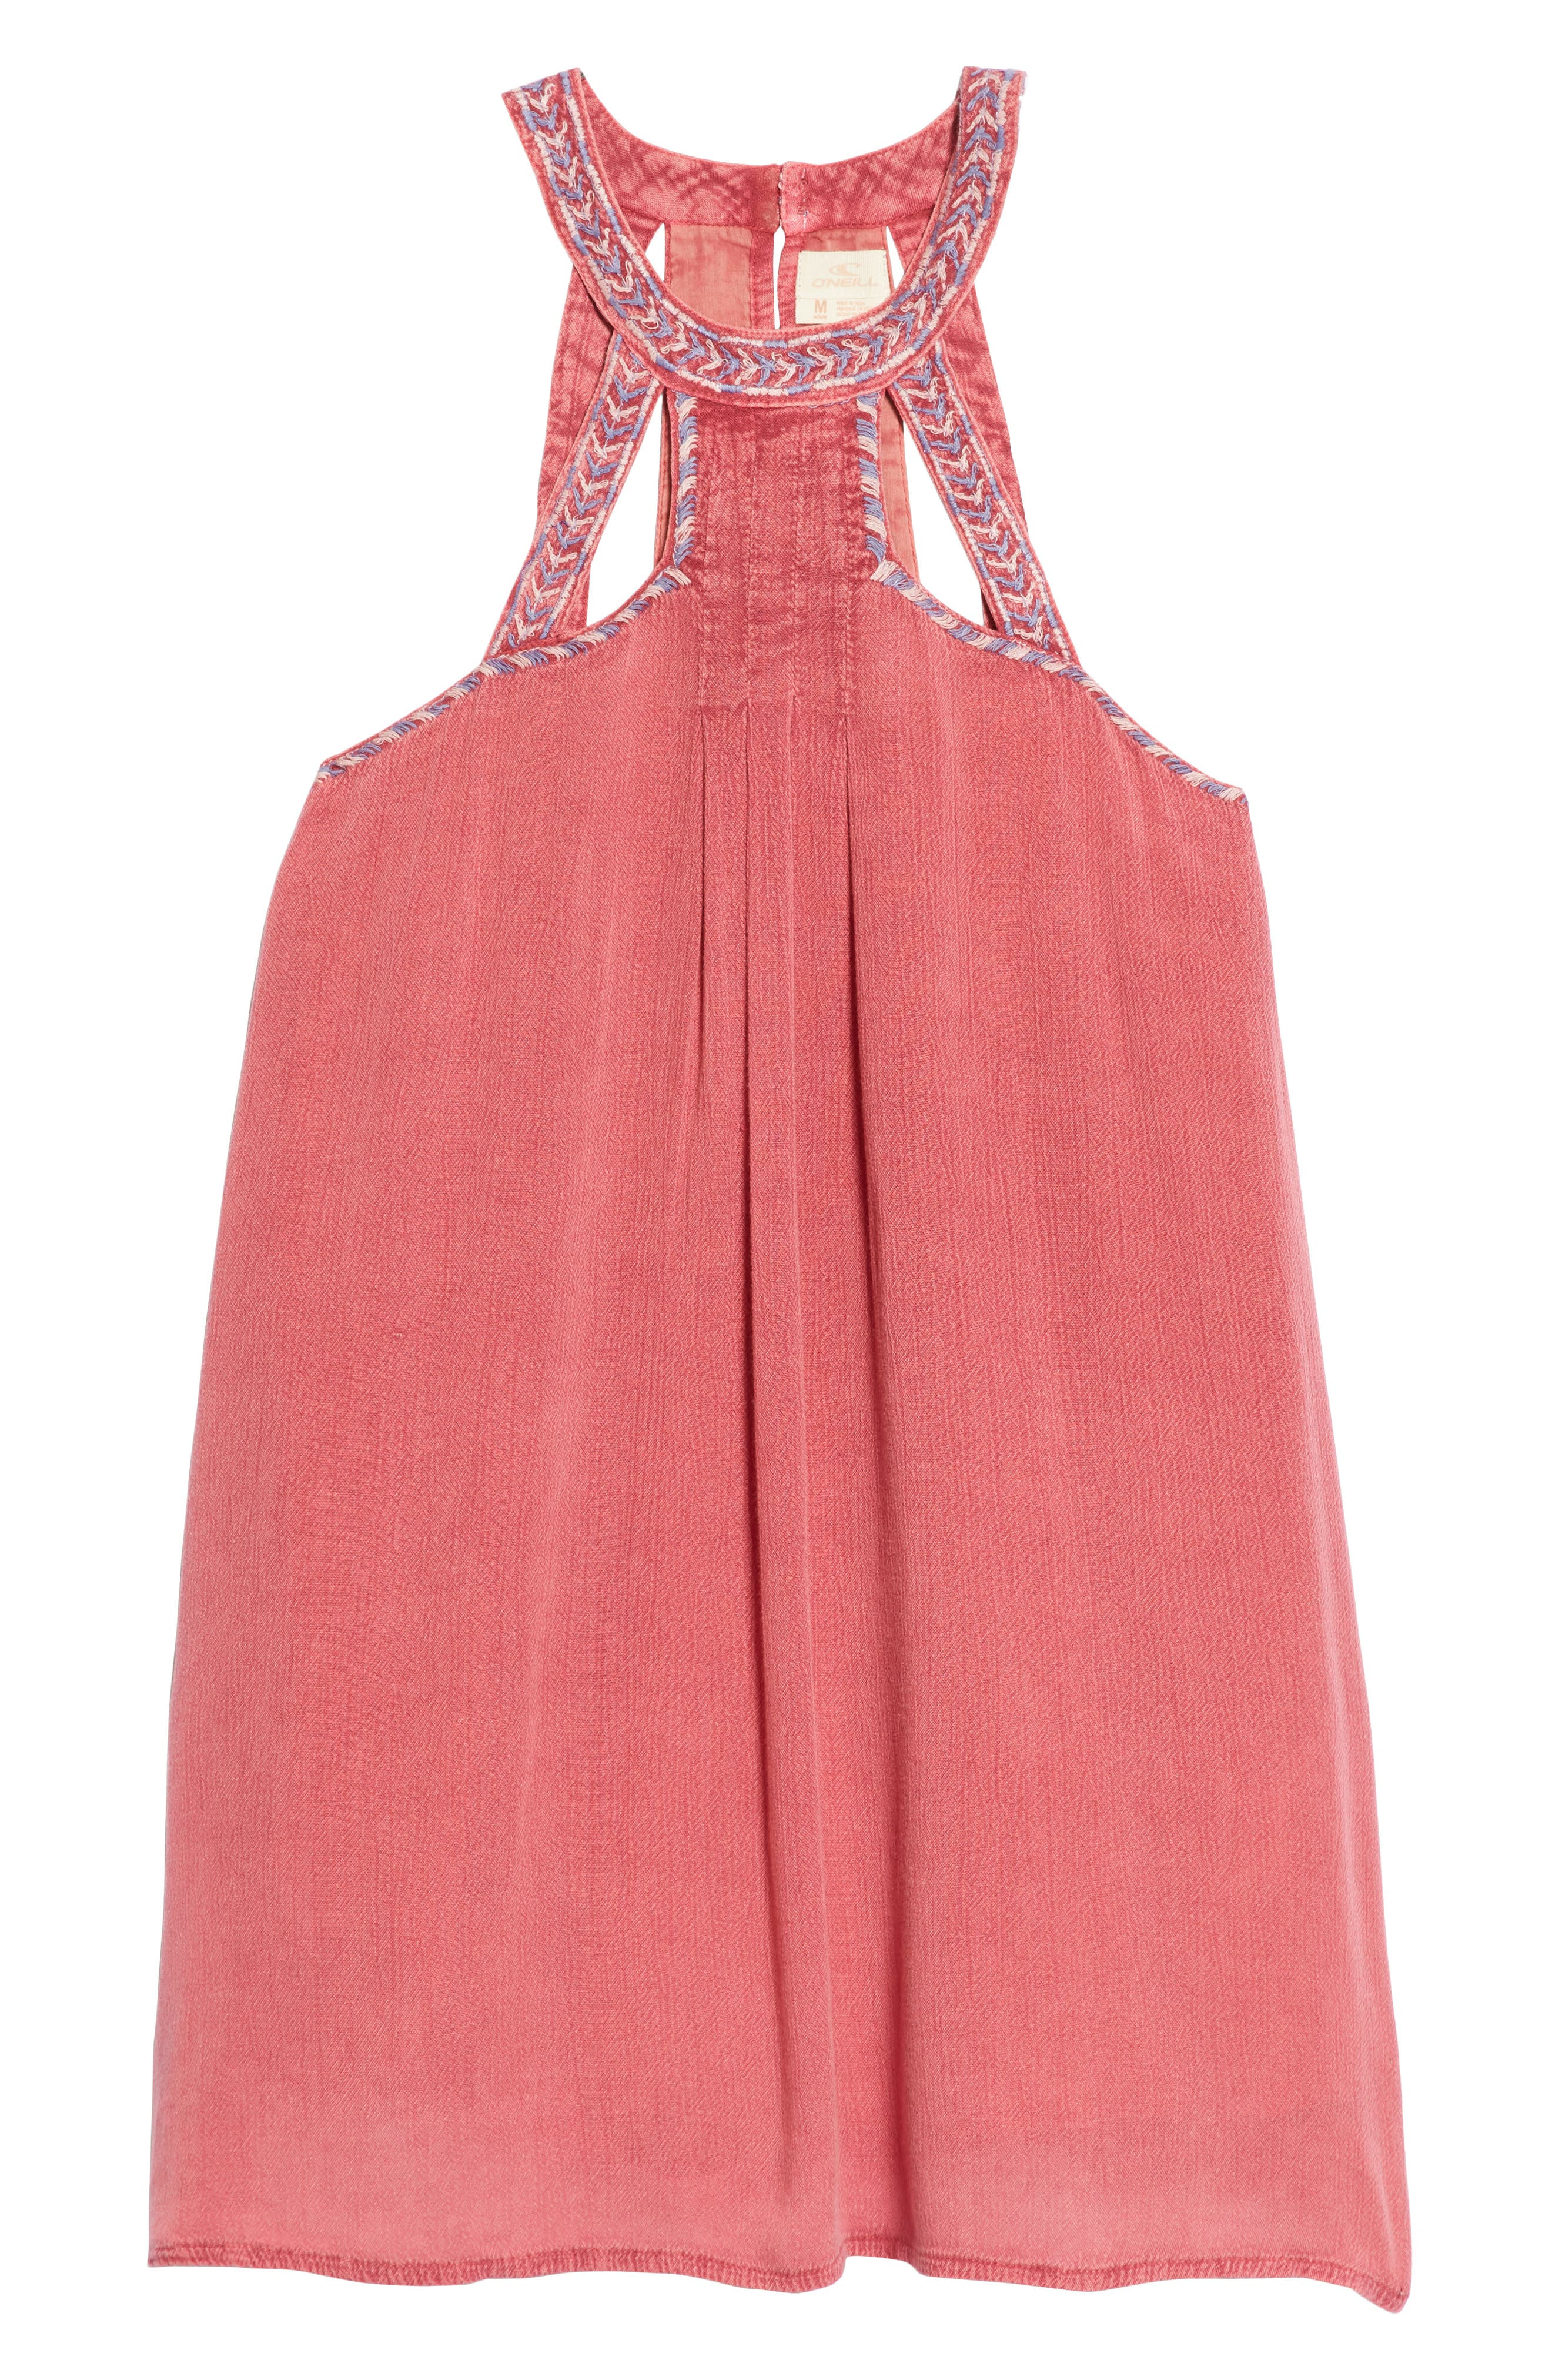 Leighton Embroidered Swing Dress,                         Main,                         color, 671